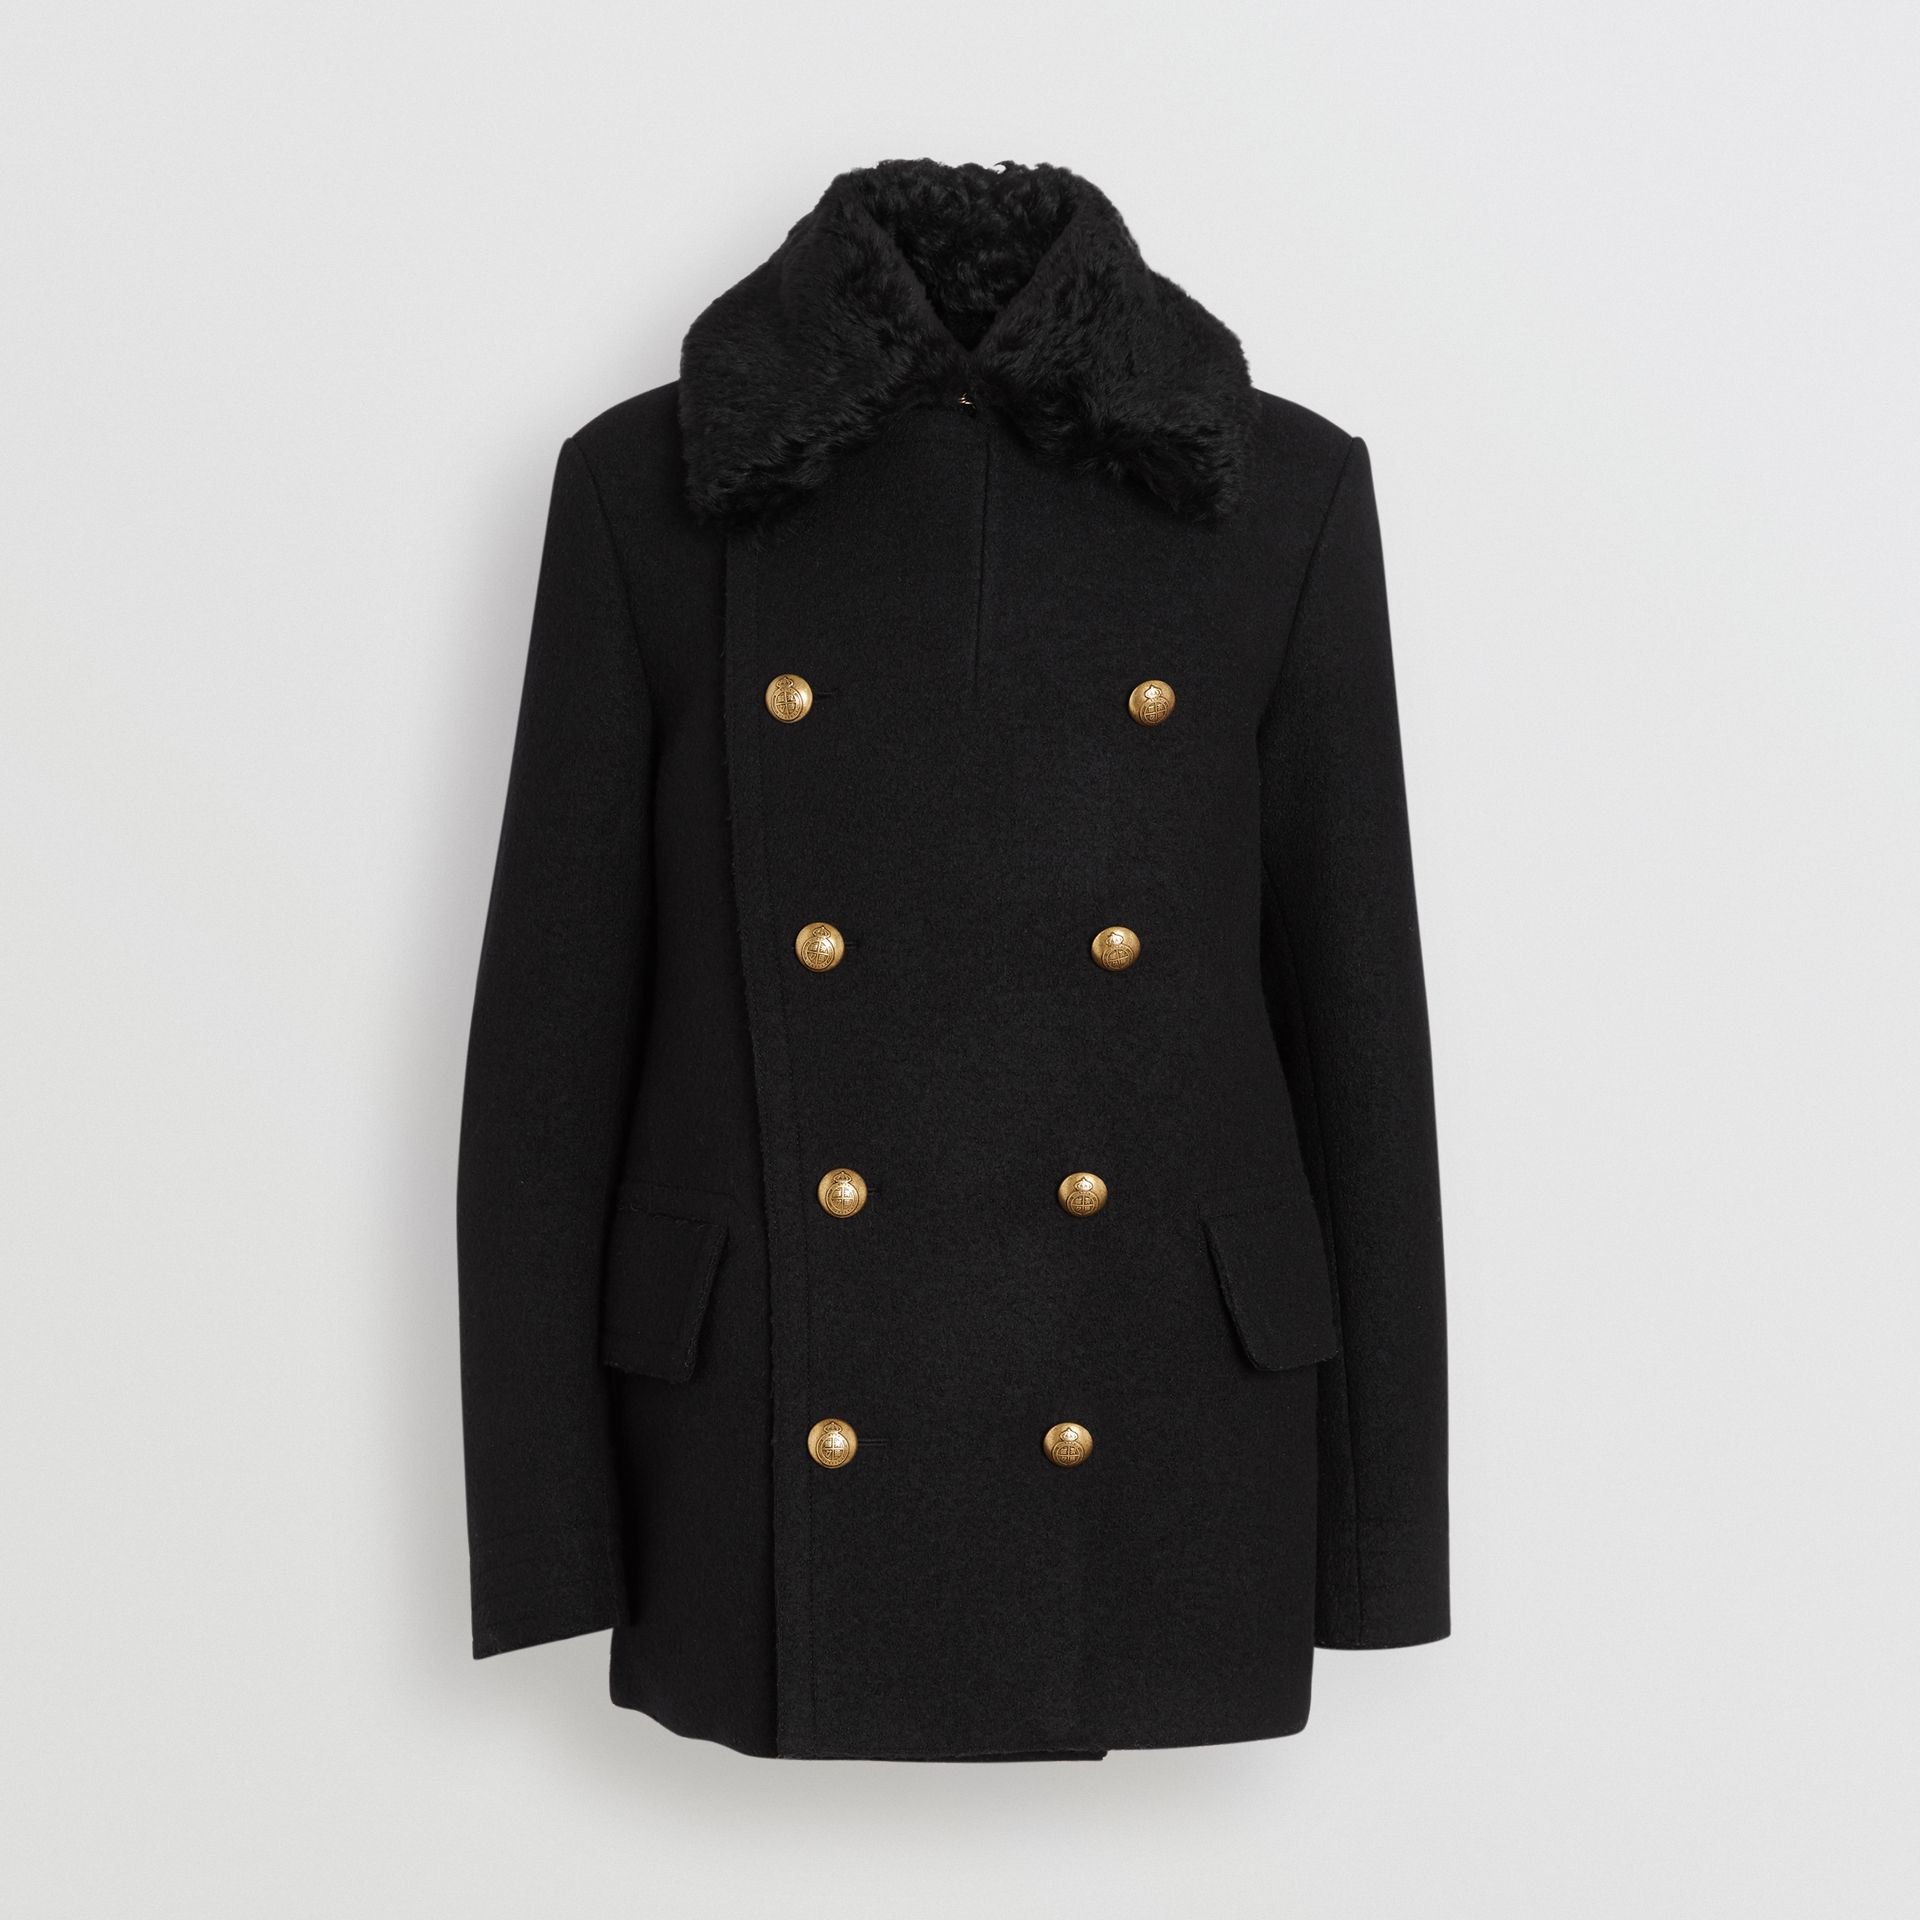 Detachable Shearling Collar Wool Pea Coat in Black - Men | Burberry - gallery image 3